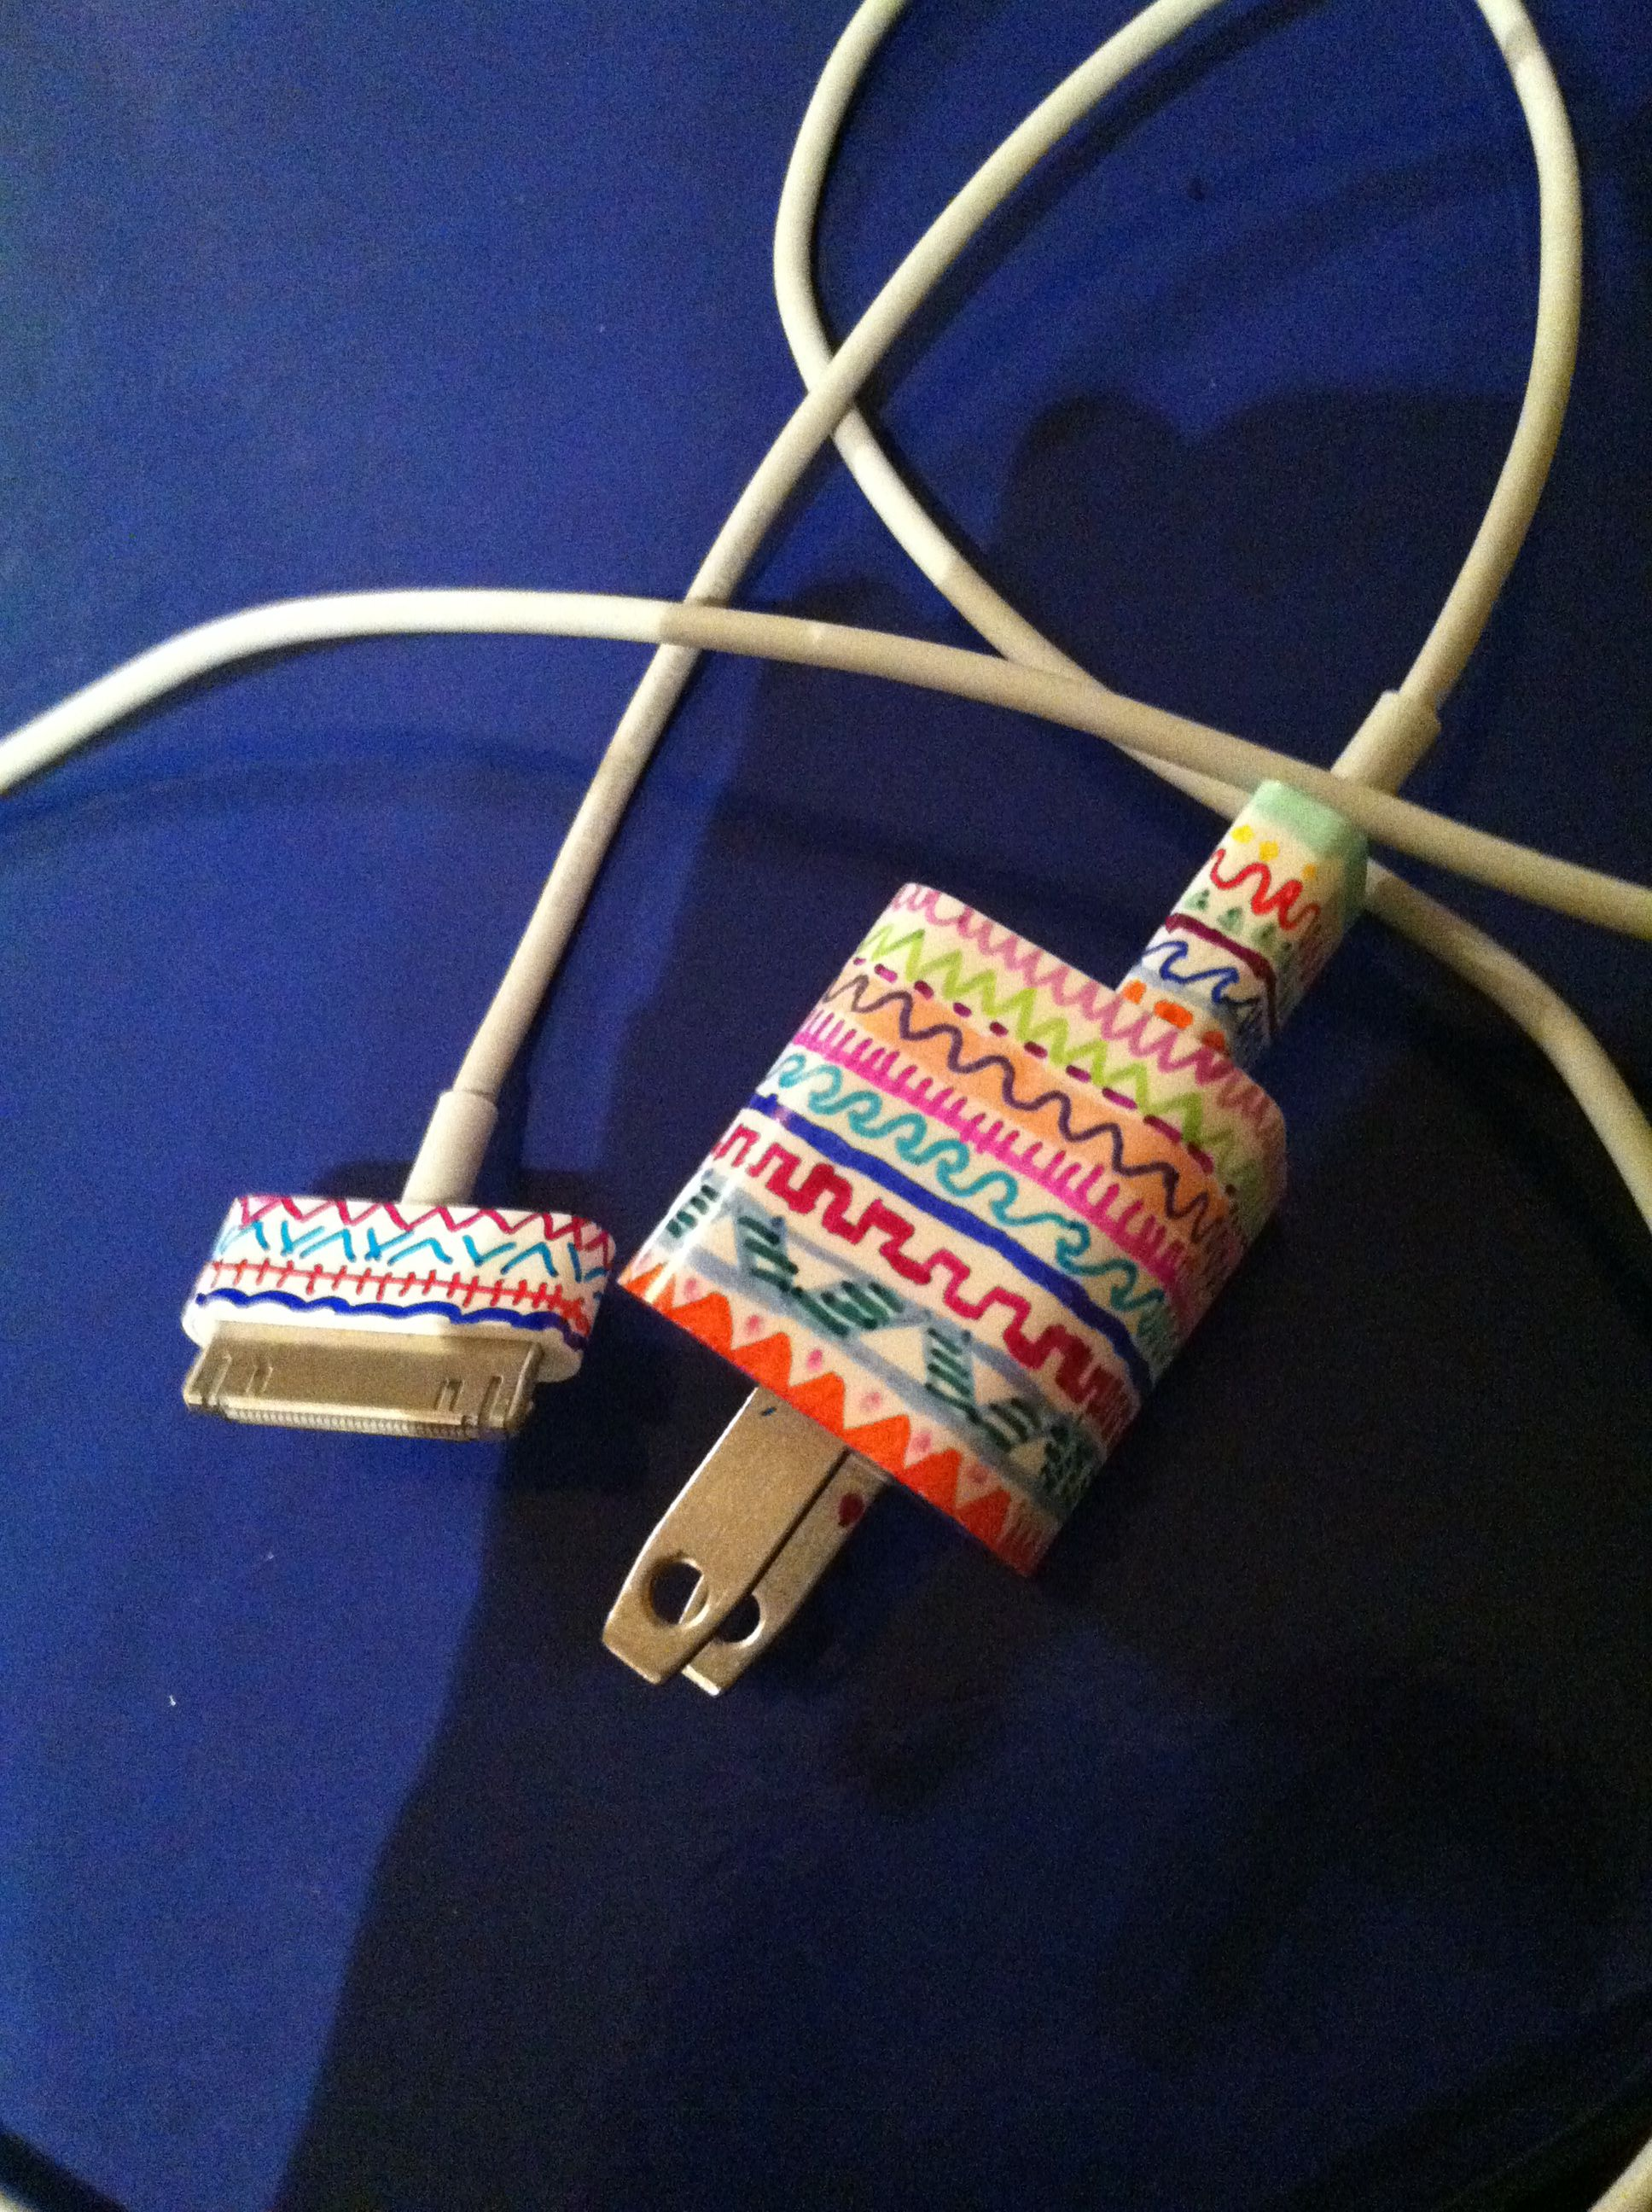 Pin By Stef Bucher On C R A F T Y D I Y Iphone Charger Sharpie Crafts Sharpie